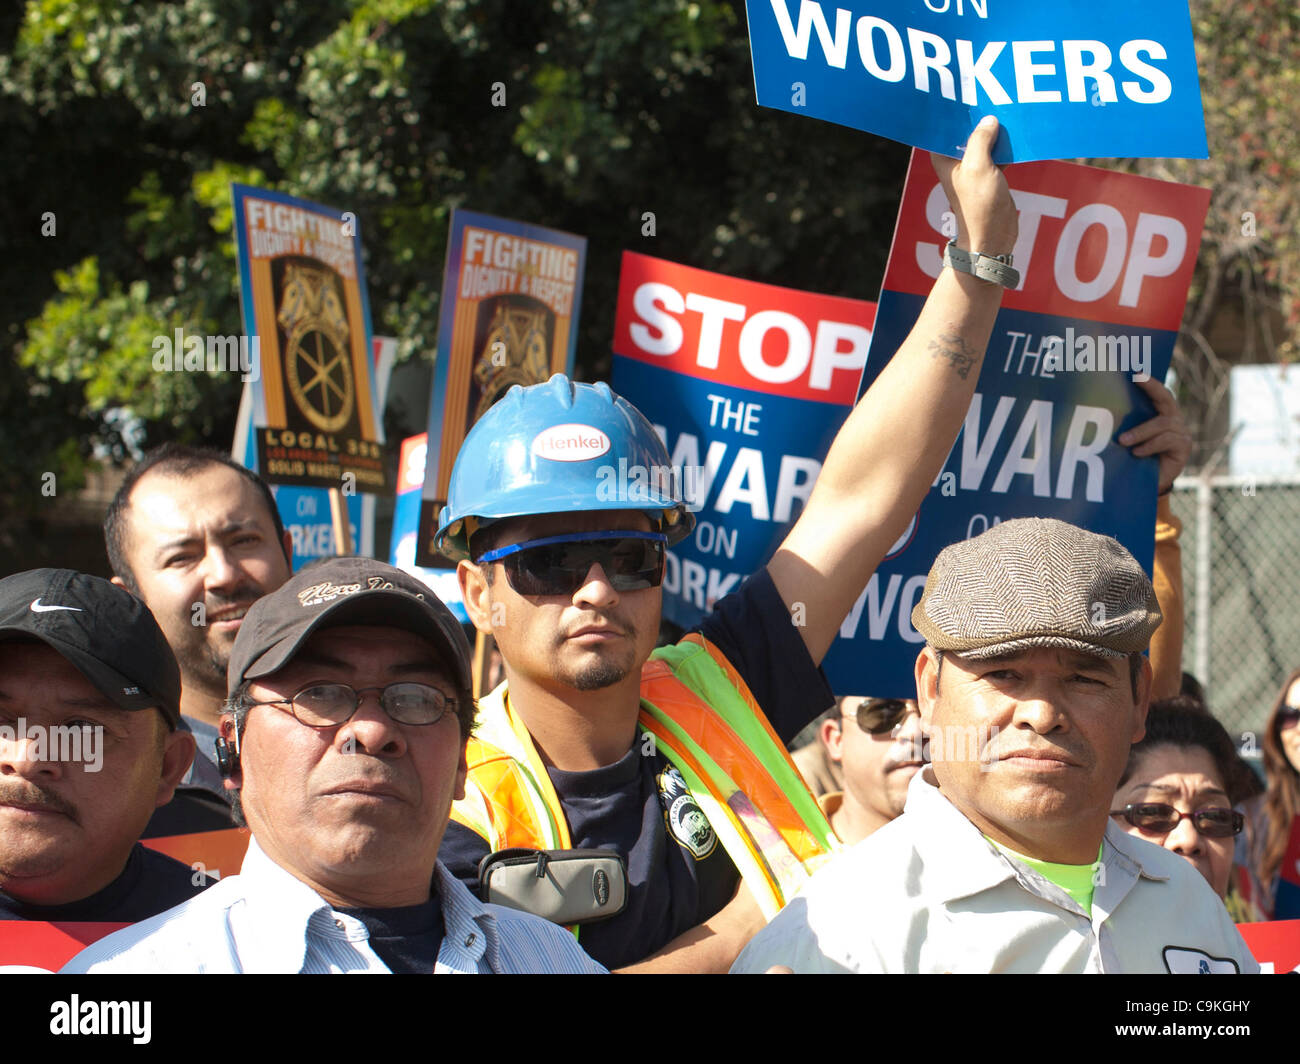 Members of the Teamsters holds a sign in support of workers